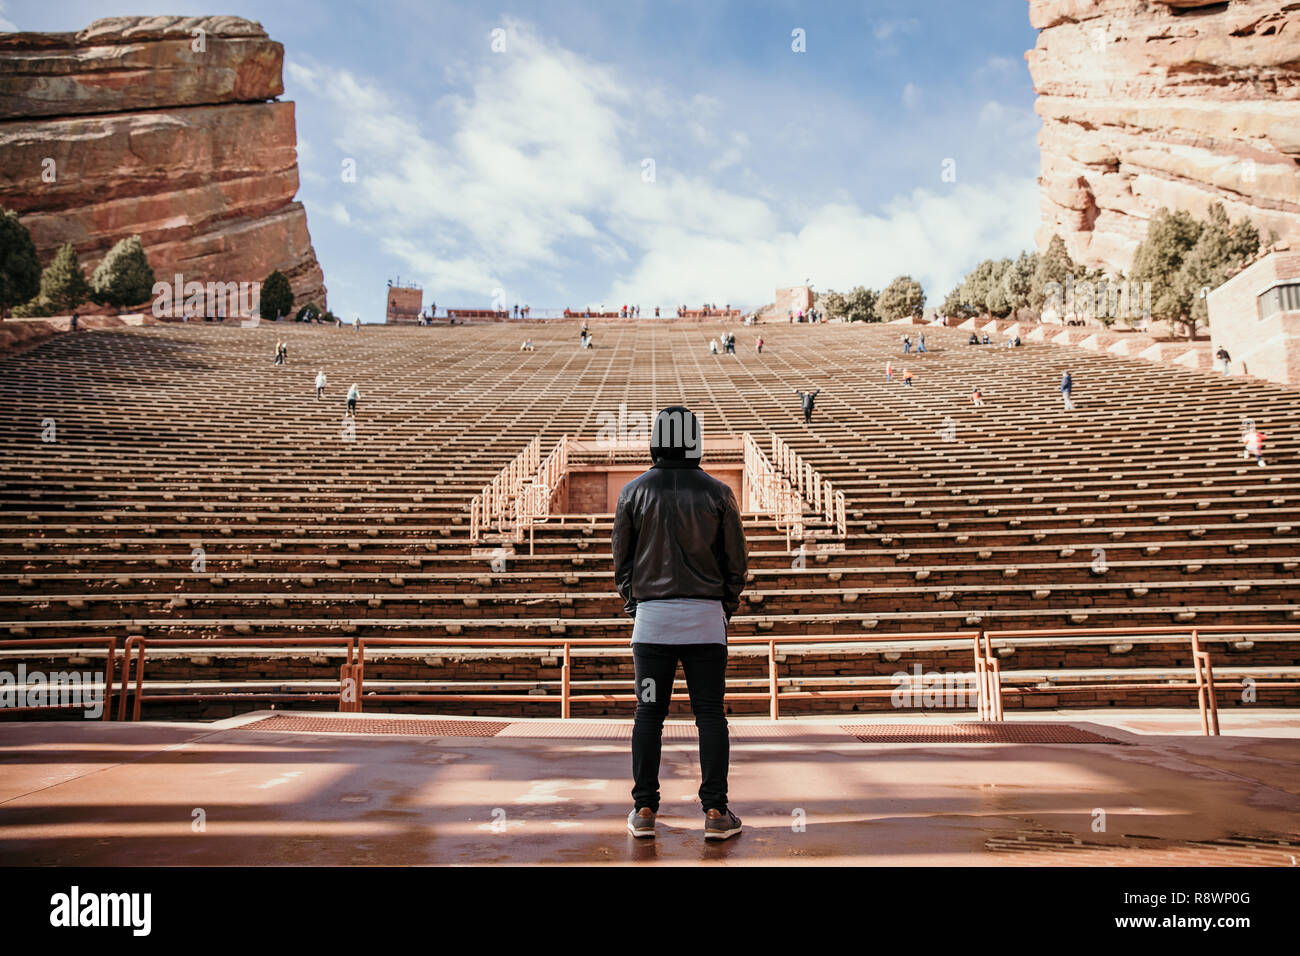 Symmetrical Portrait of Person Standing on a Stage Dreaming while Facing Stadium Stands Seating at Outdoor Amphitheater Concert Music Hall Outside - Stock Image